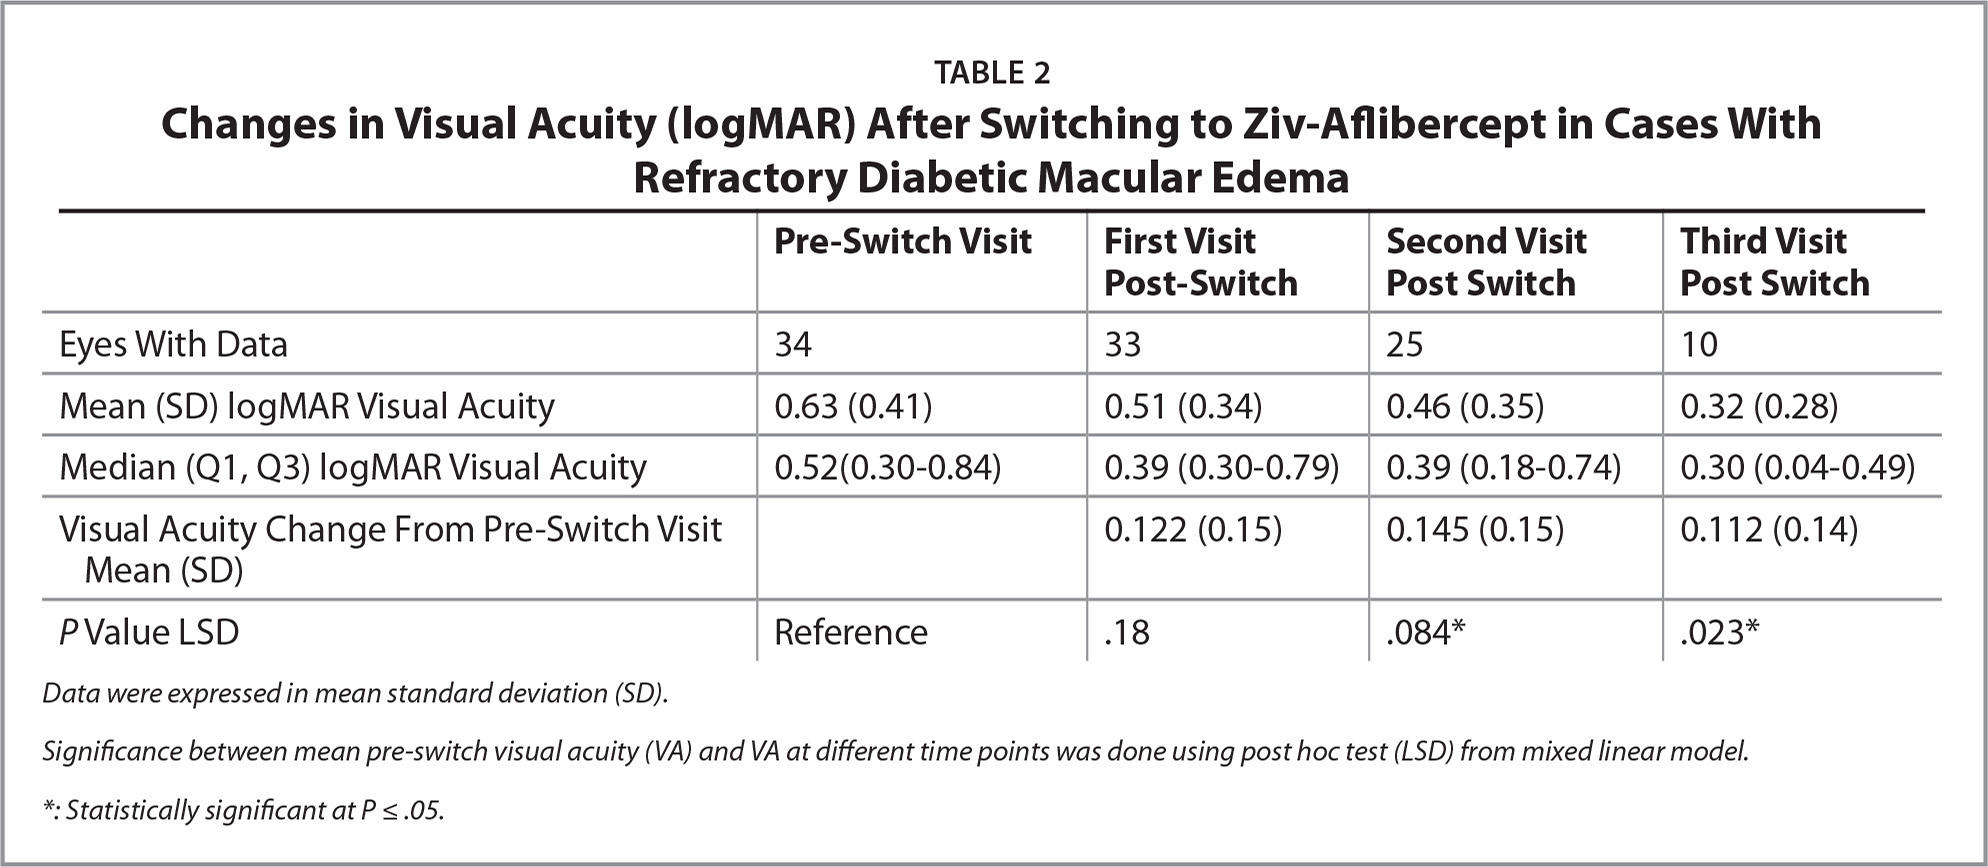 Changes in Visual Acuity (logMAR) After Switching to Ziv-Aflibercept in Cases With Refractory Diabetic Macular Edema